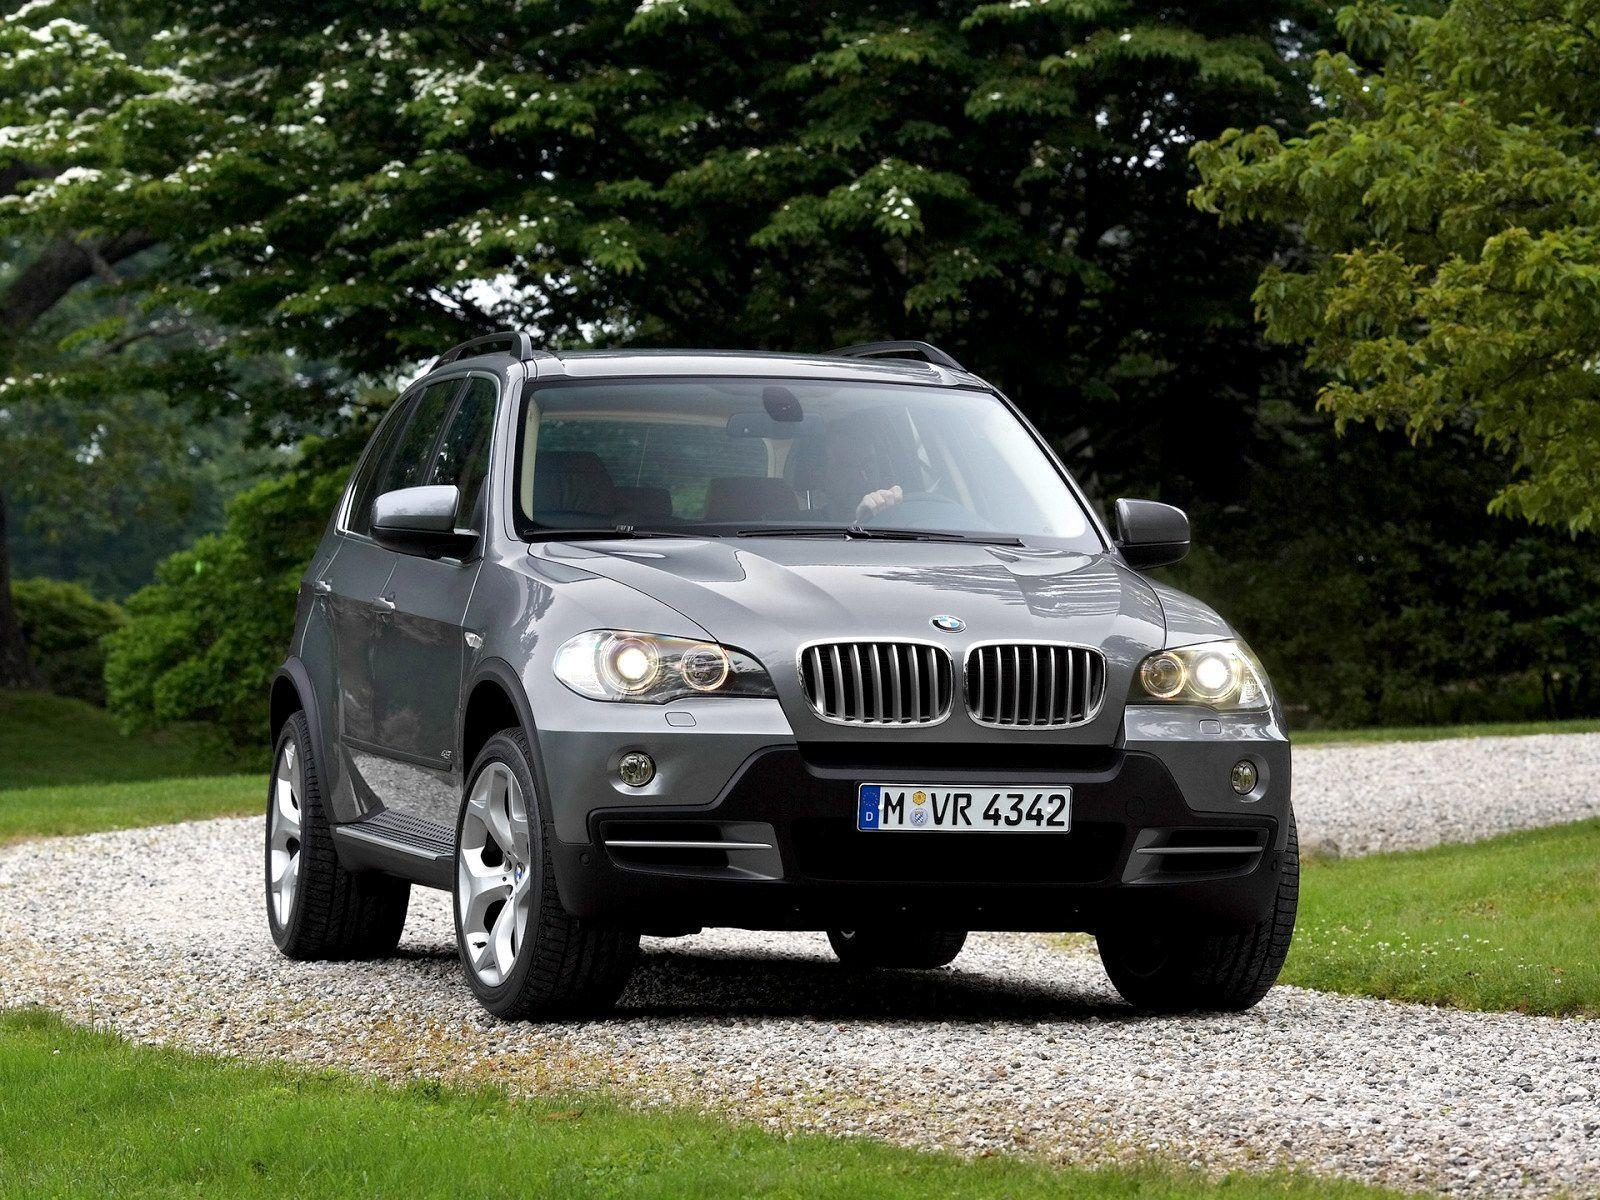 2007 BMW X5 Wallpaper 16 - 1600x1200